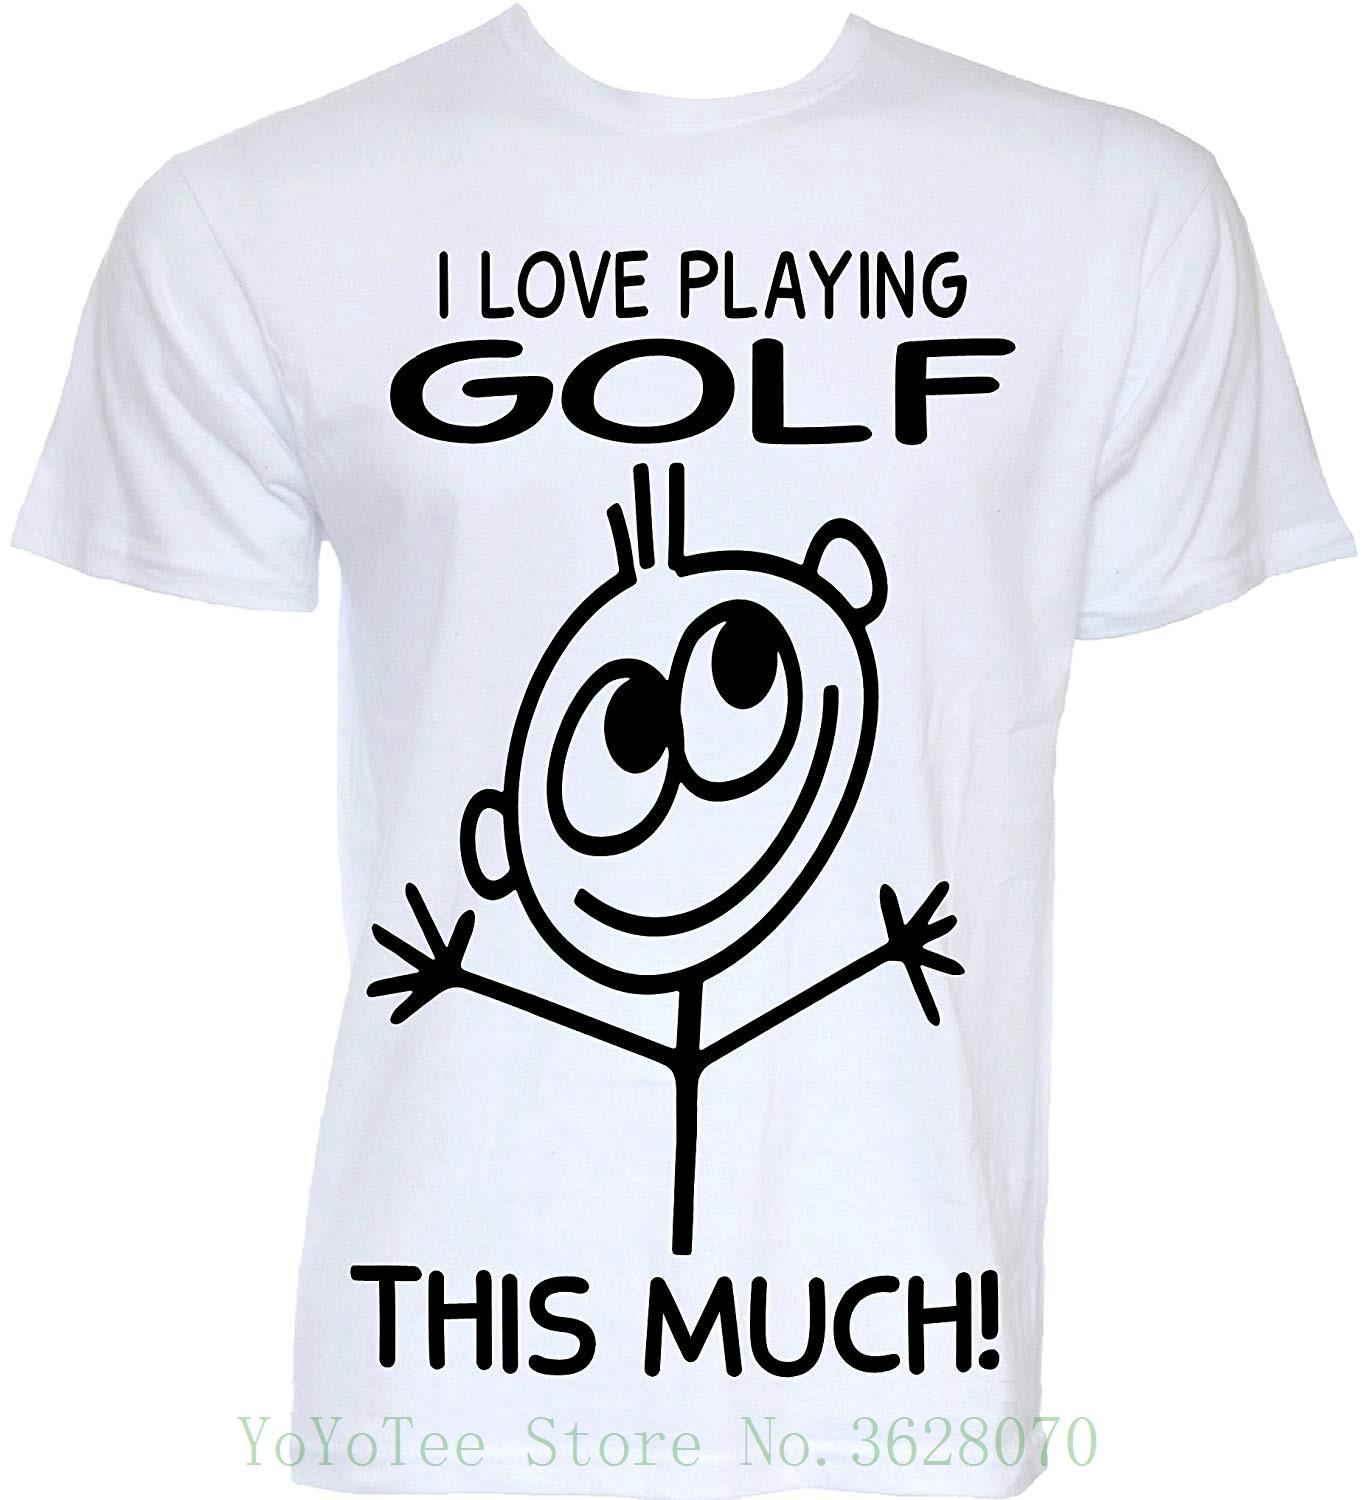 6e89e4fc Beat Tees Clothing Mens Funny Cool Novelty Love Golfer Joke Golfing Golfer  Slogan Gifts T Shirts Customize Tee Shirts Online Buy T Shirts Tna Shirts  From ...